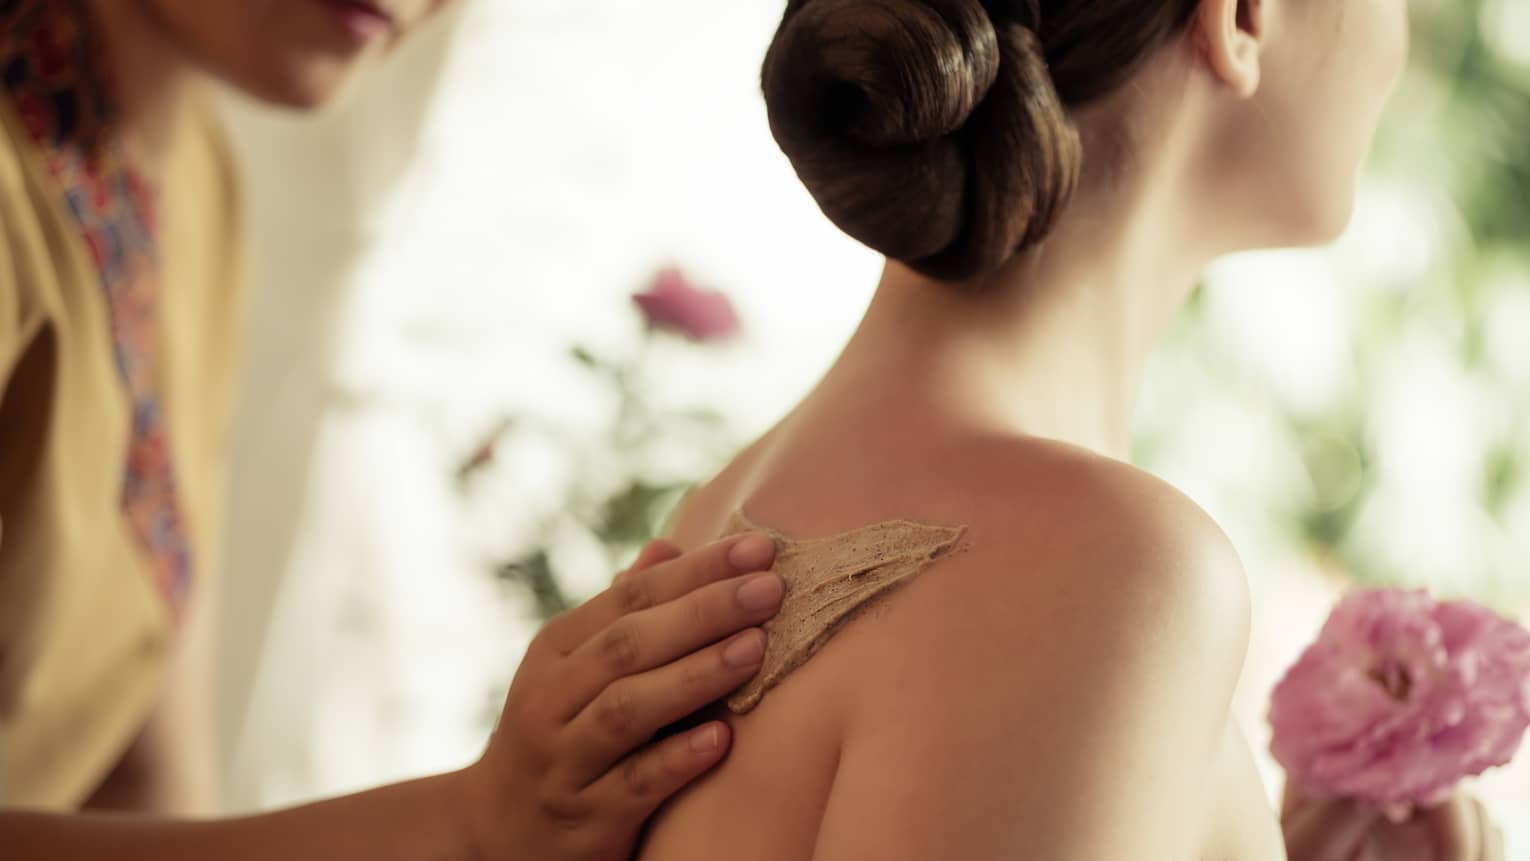 Spa staff rubs thick lotion on woman's bare shoulders as she holds a fresh flower